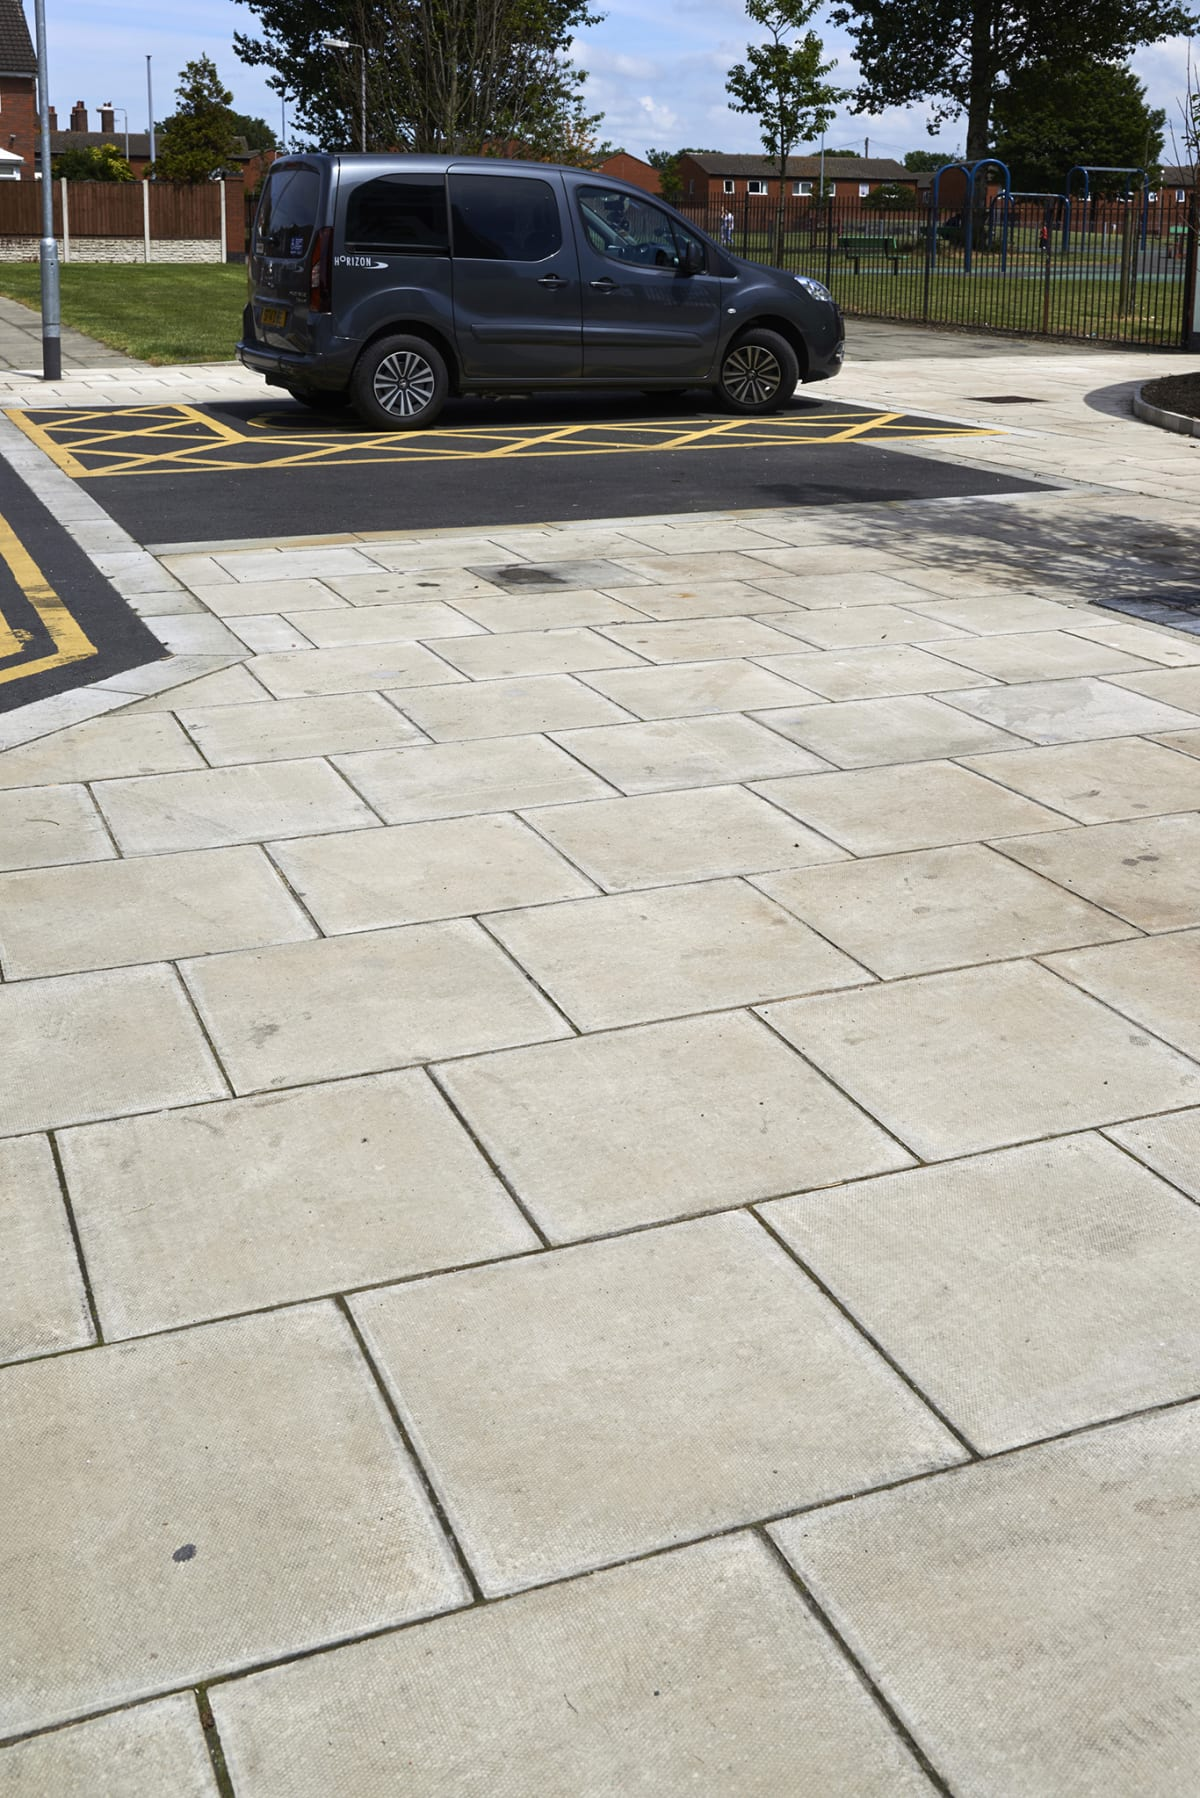 green fields place - standard pimple textured paving - buff